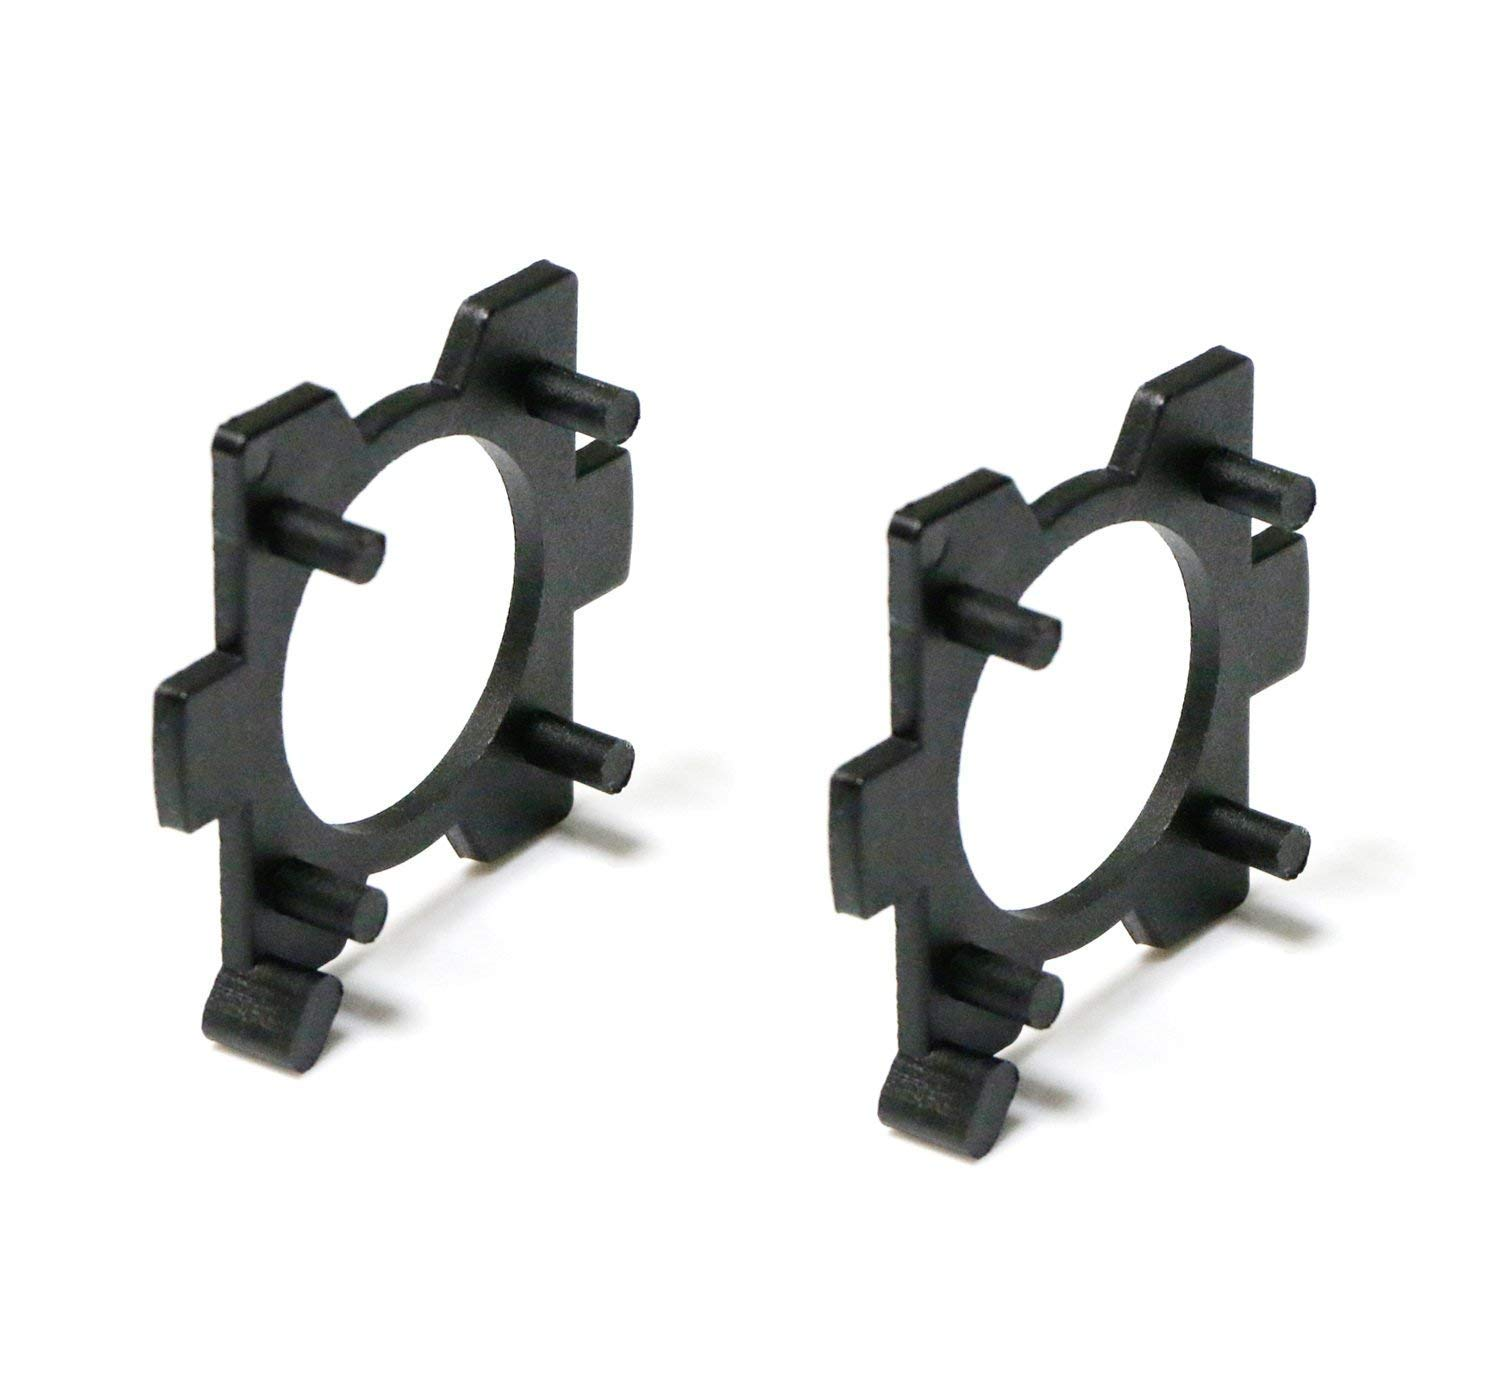 iJDMTOY (2) H7 LED Headlight Bulbs Adapters Holders Retainers For Mazda 3 5 6 MX-5 CX-5 CX-7 RX-8, etc (Low Beam) iJDMTOY Auto Accessories No modification require LED holder ring